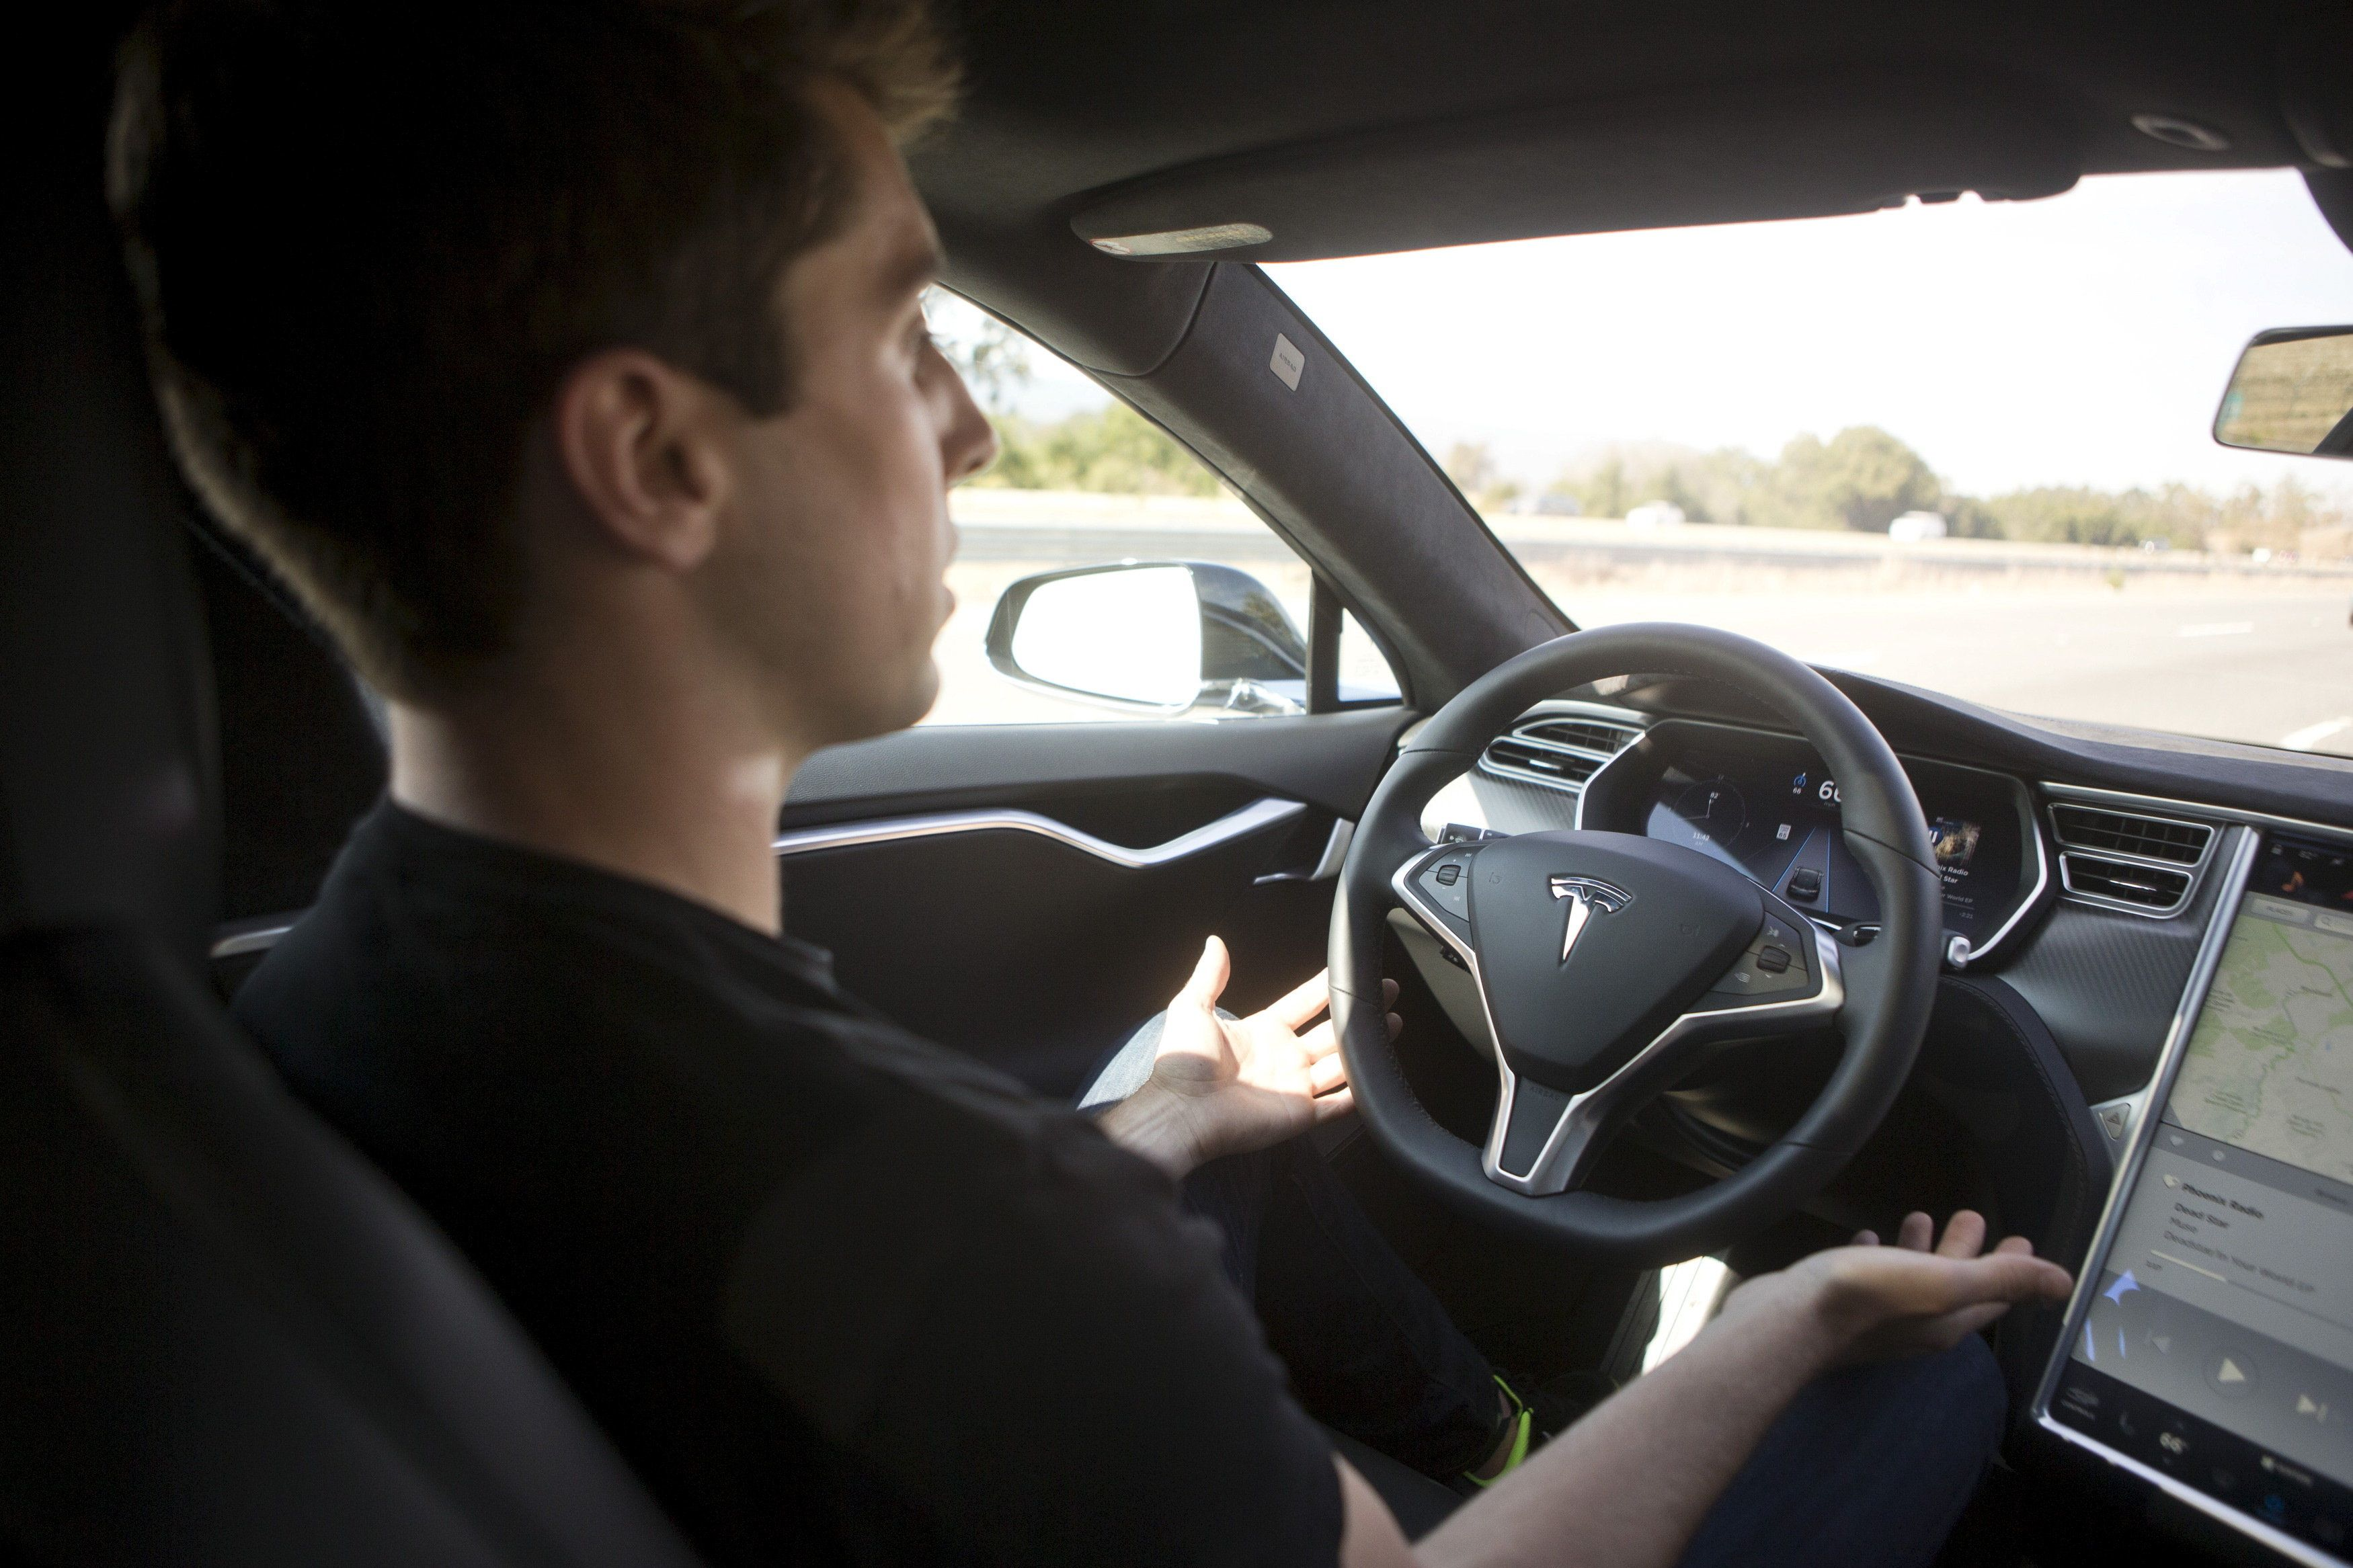 A driver demonstrates Autopilot features in a Tesla Model S in Palo Alto, California, in 2015.